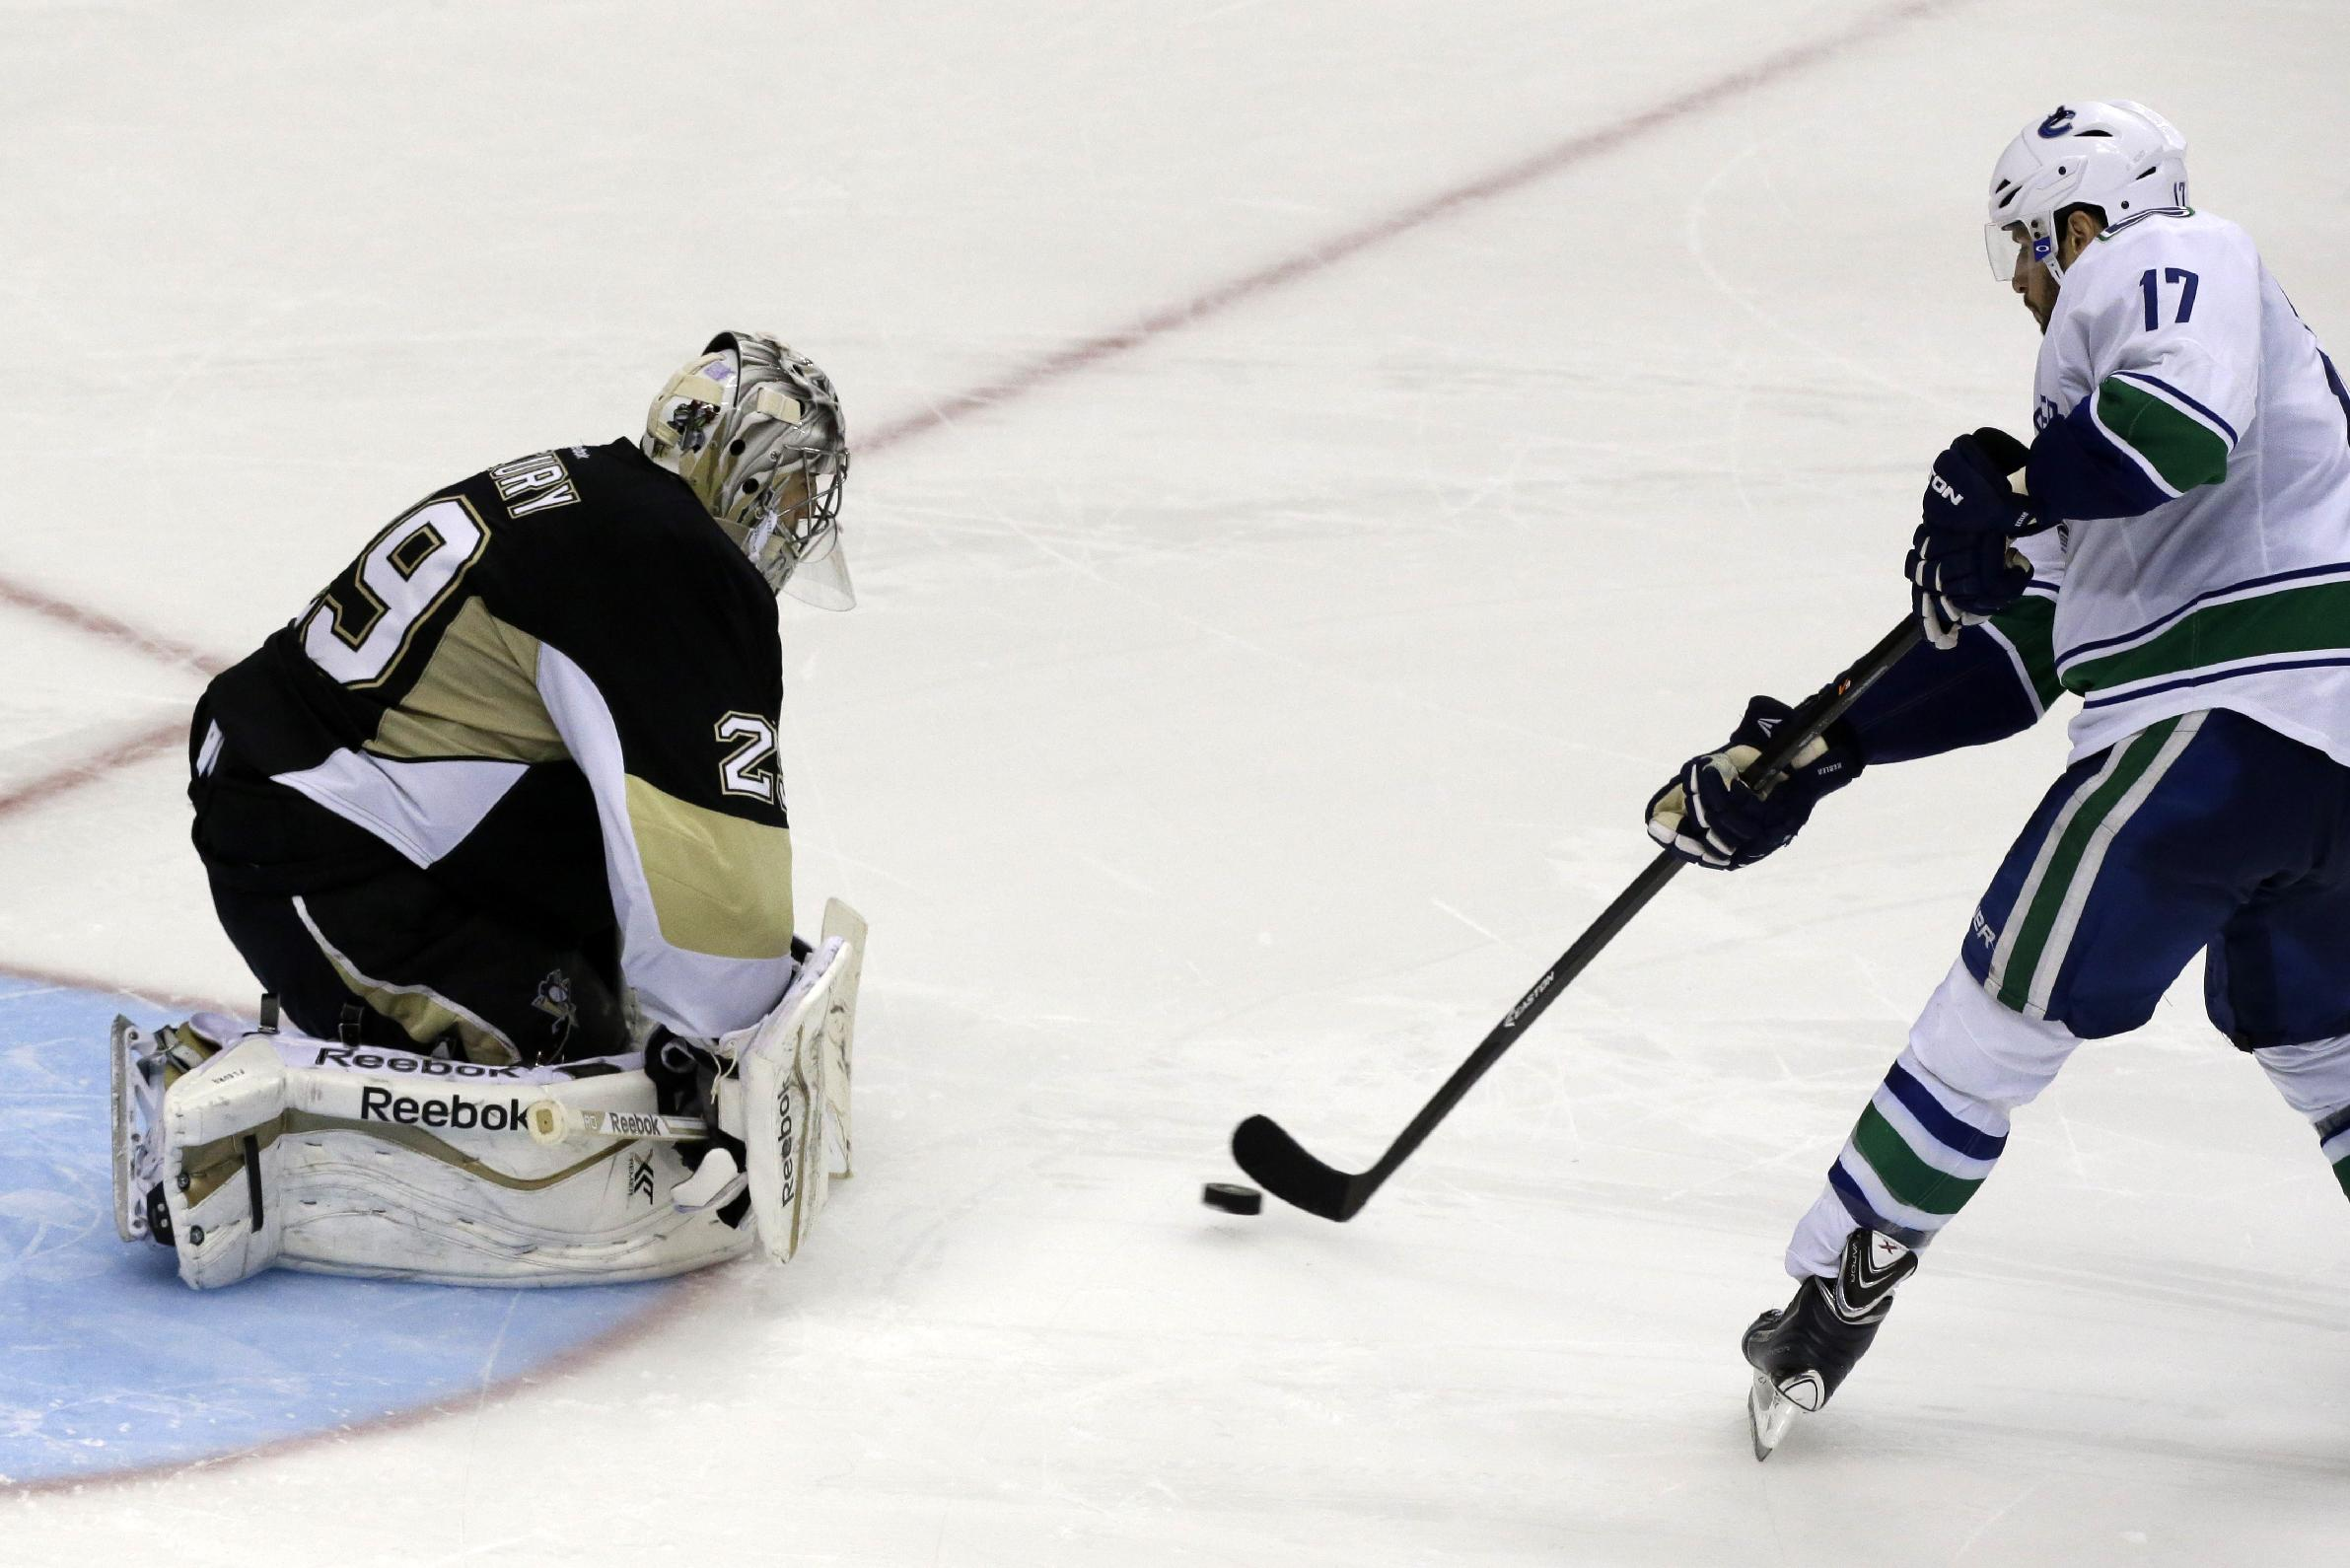 Pittsburgh Penguins goalie Marc-Andre Fleury (29) stops a shot by Vancouver Canucks' Ryan Kesler (17) in an overtime shootout during an NHL hockey game in Pittsburgh Saturday, Oct. 19, 2013. The Penguins won 4-3